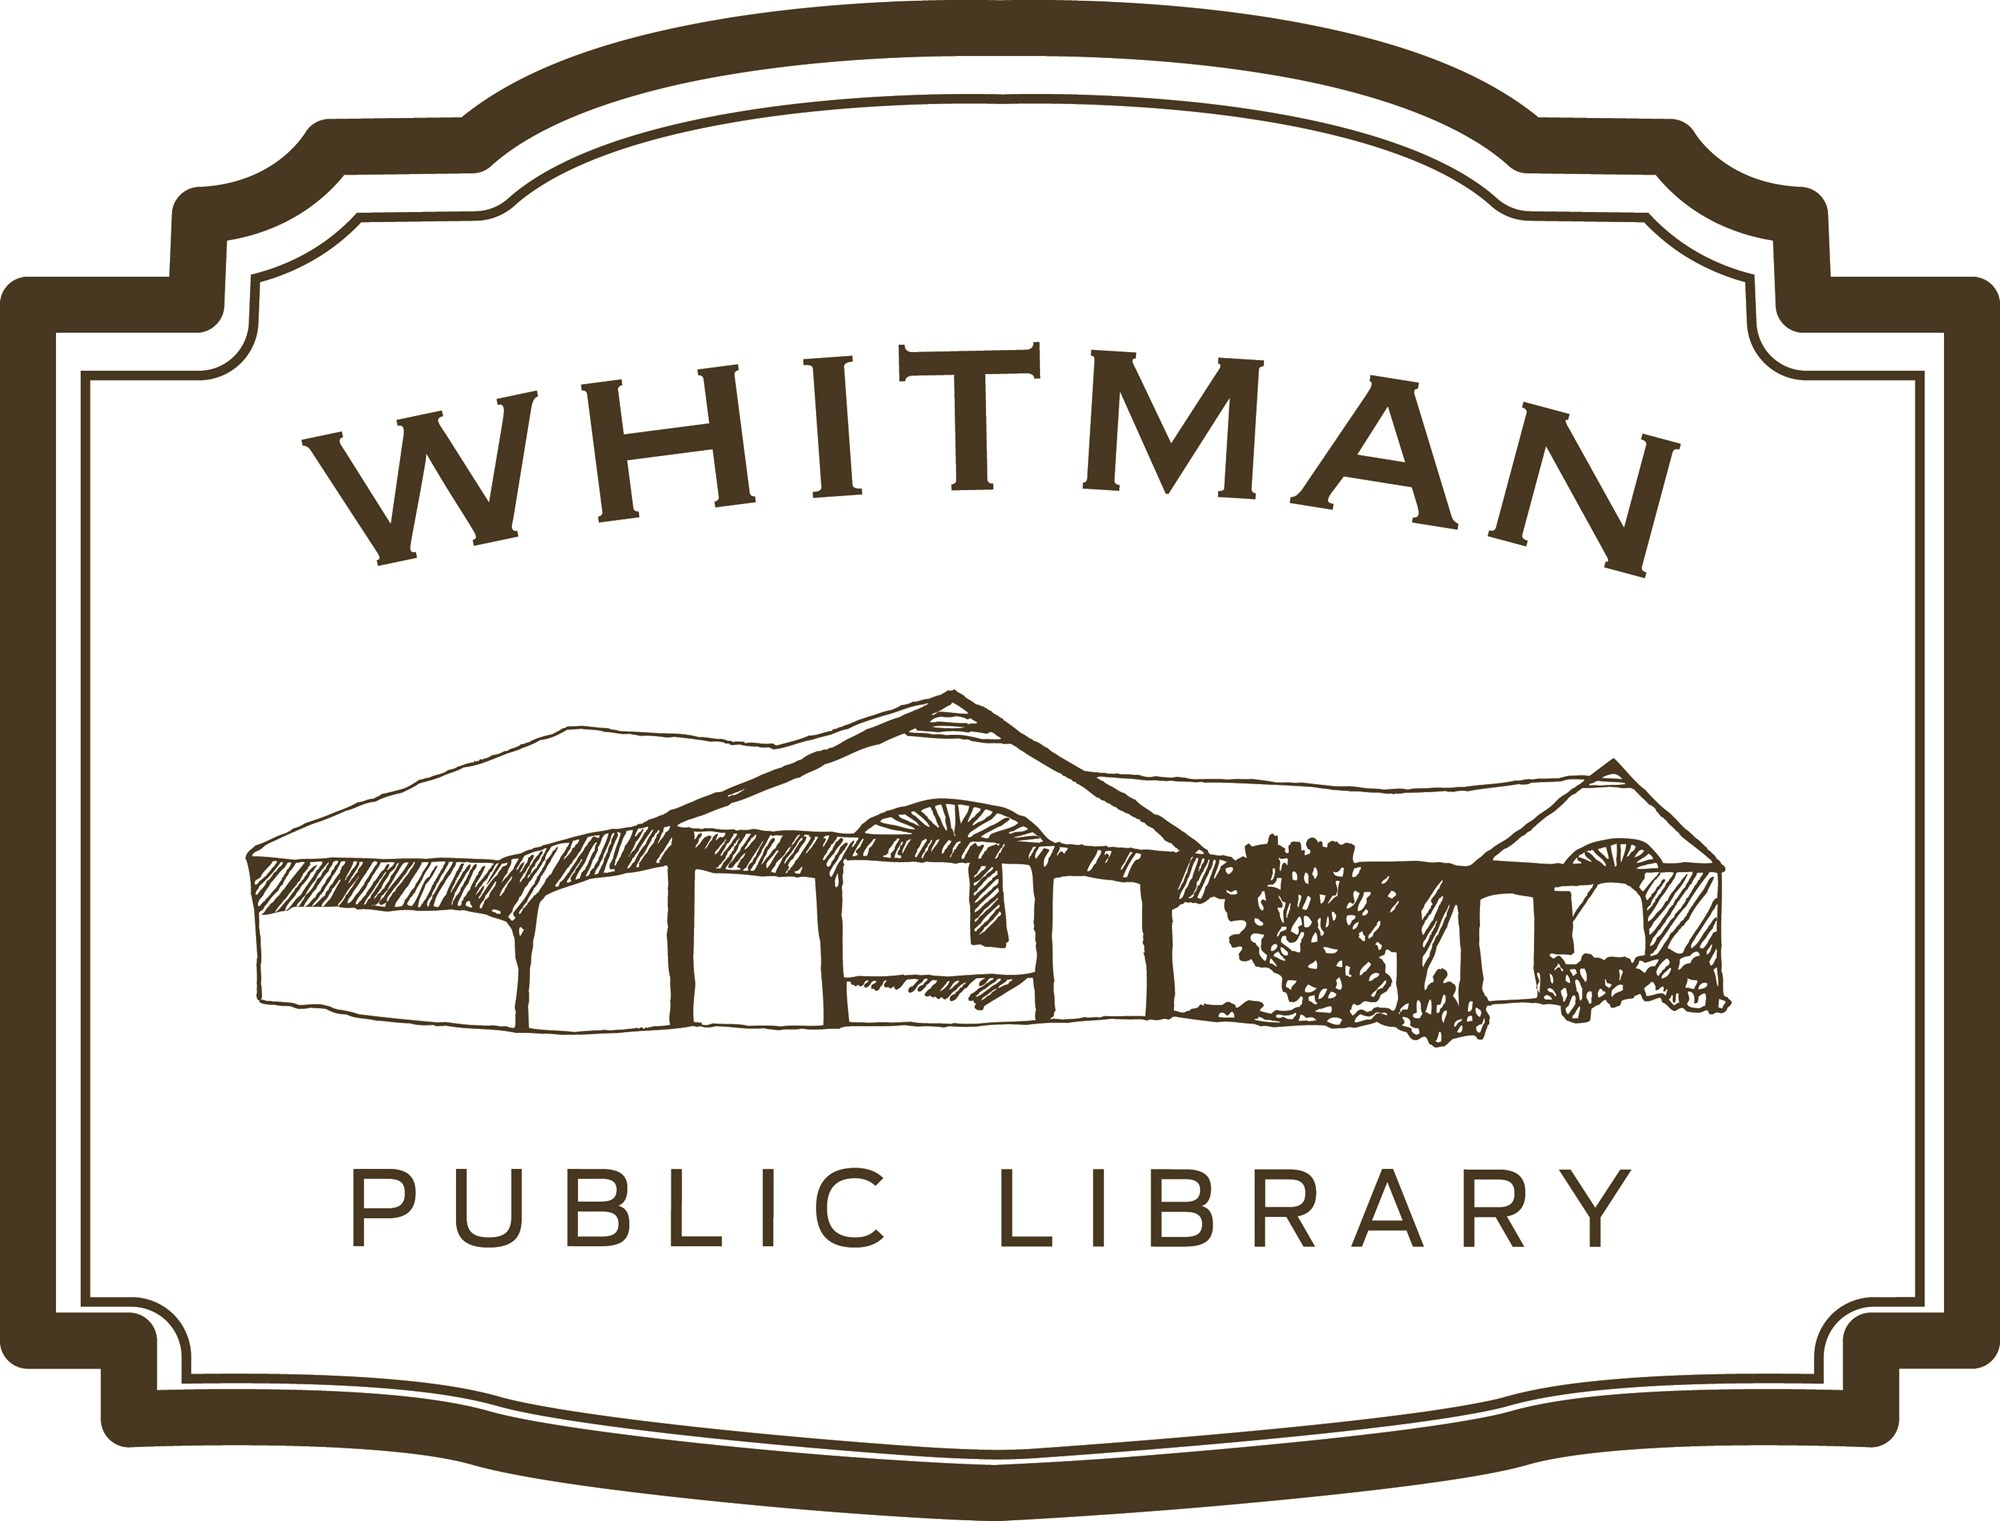 Whitman Public Library